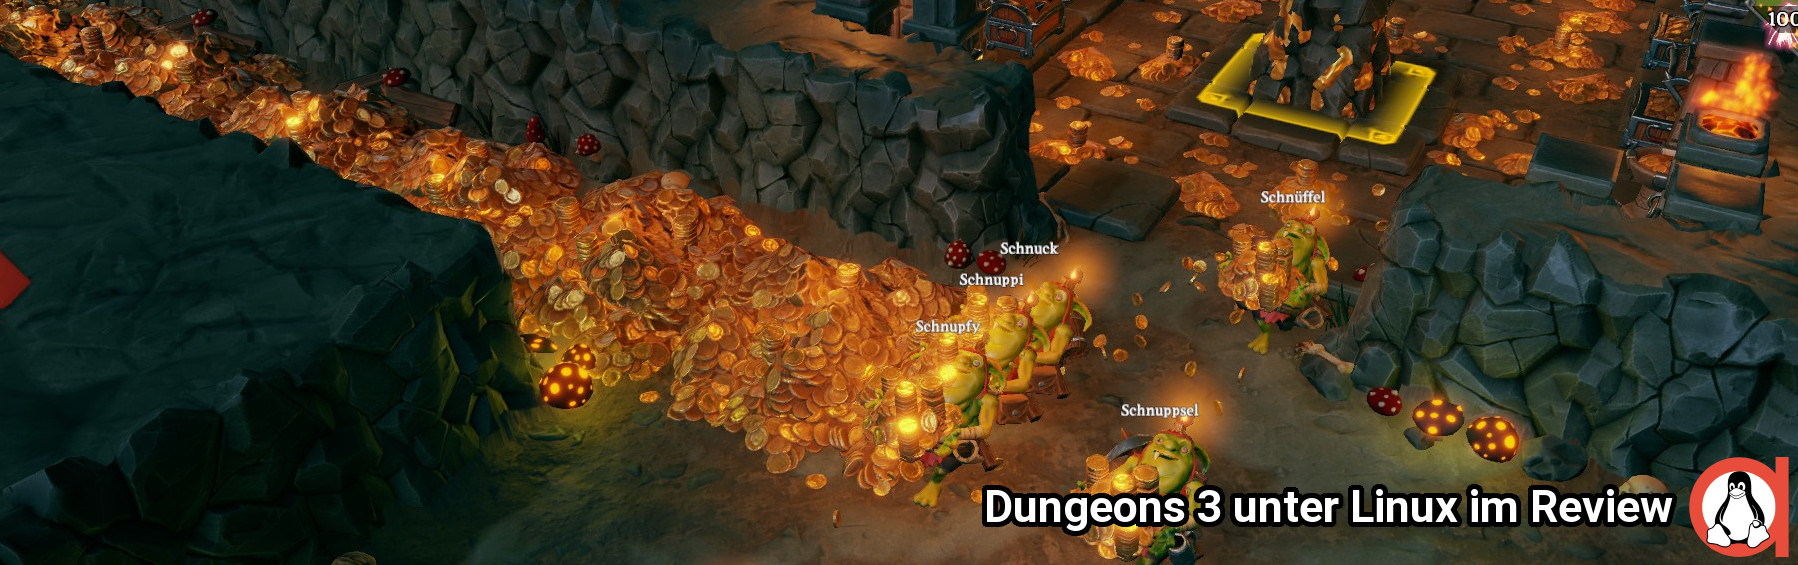 https://www.holarse-linuxgaming.de/sites/default/files/2017-10-13-1/dungeons3_teaser.jpg